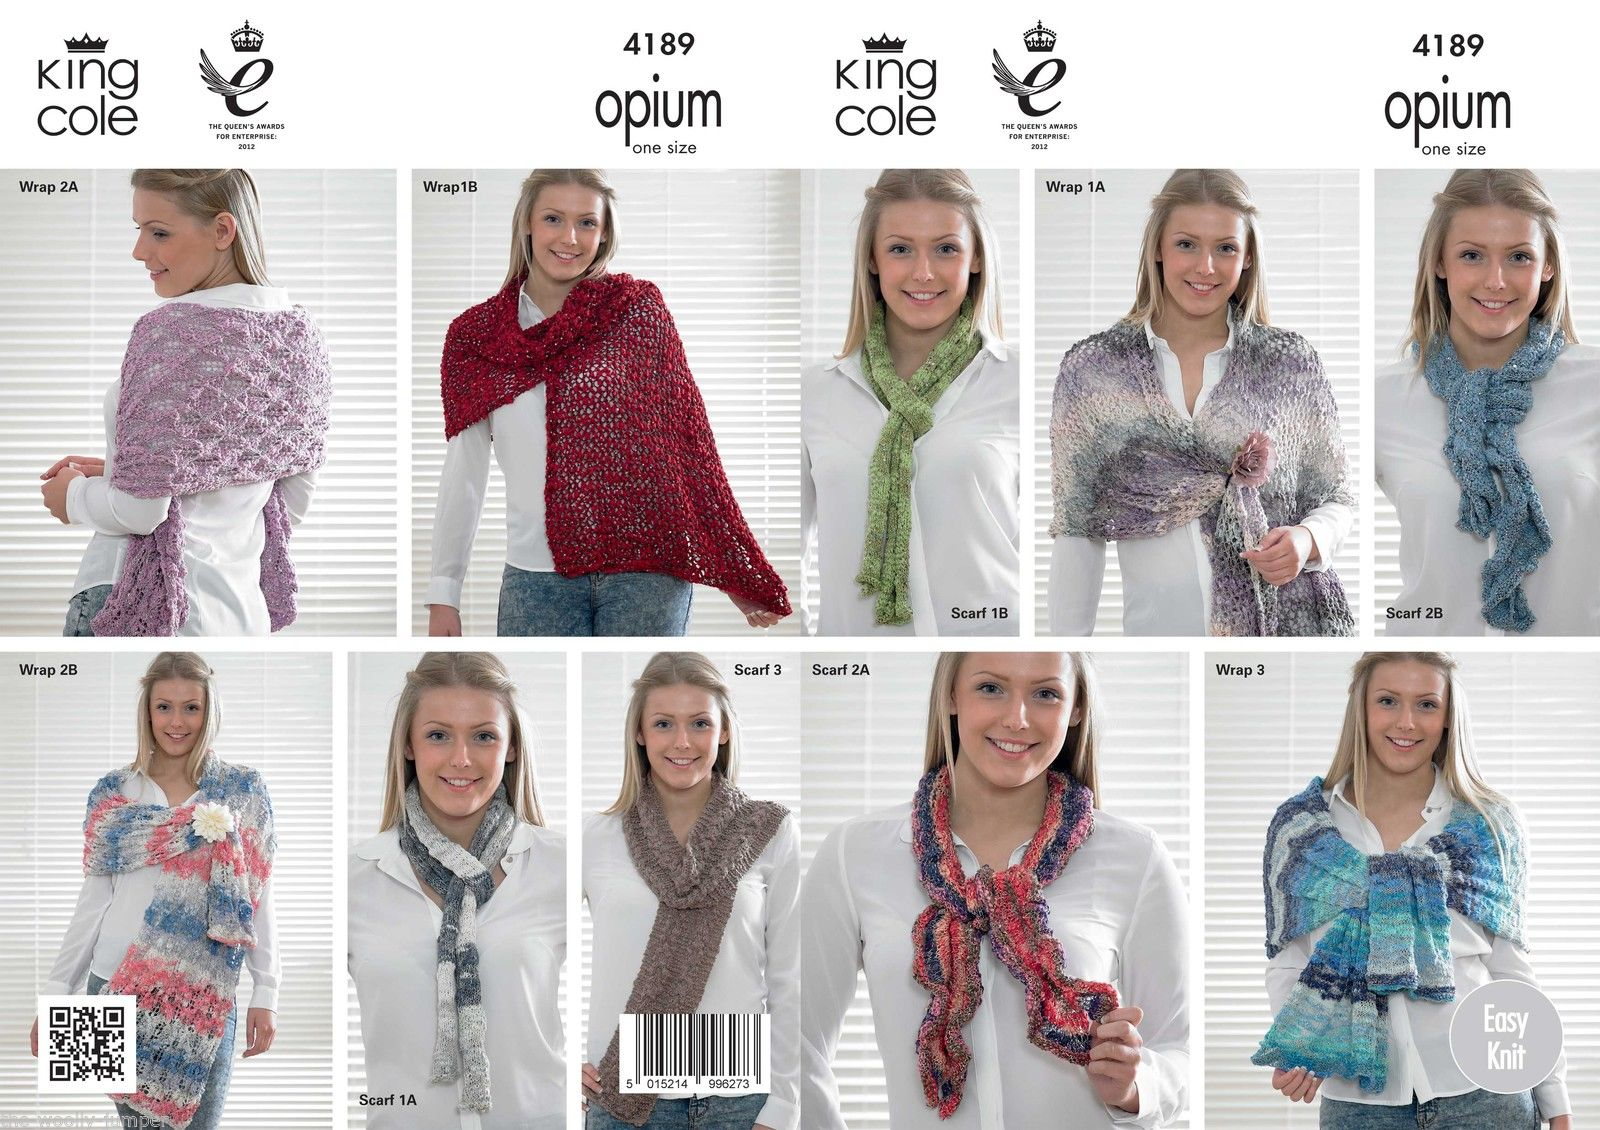 ad8e692ed 4189-king-cole-opium-ladies-wrap-scarf-knitting-pattern-one-size-84680-p.jpg